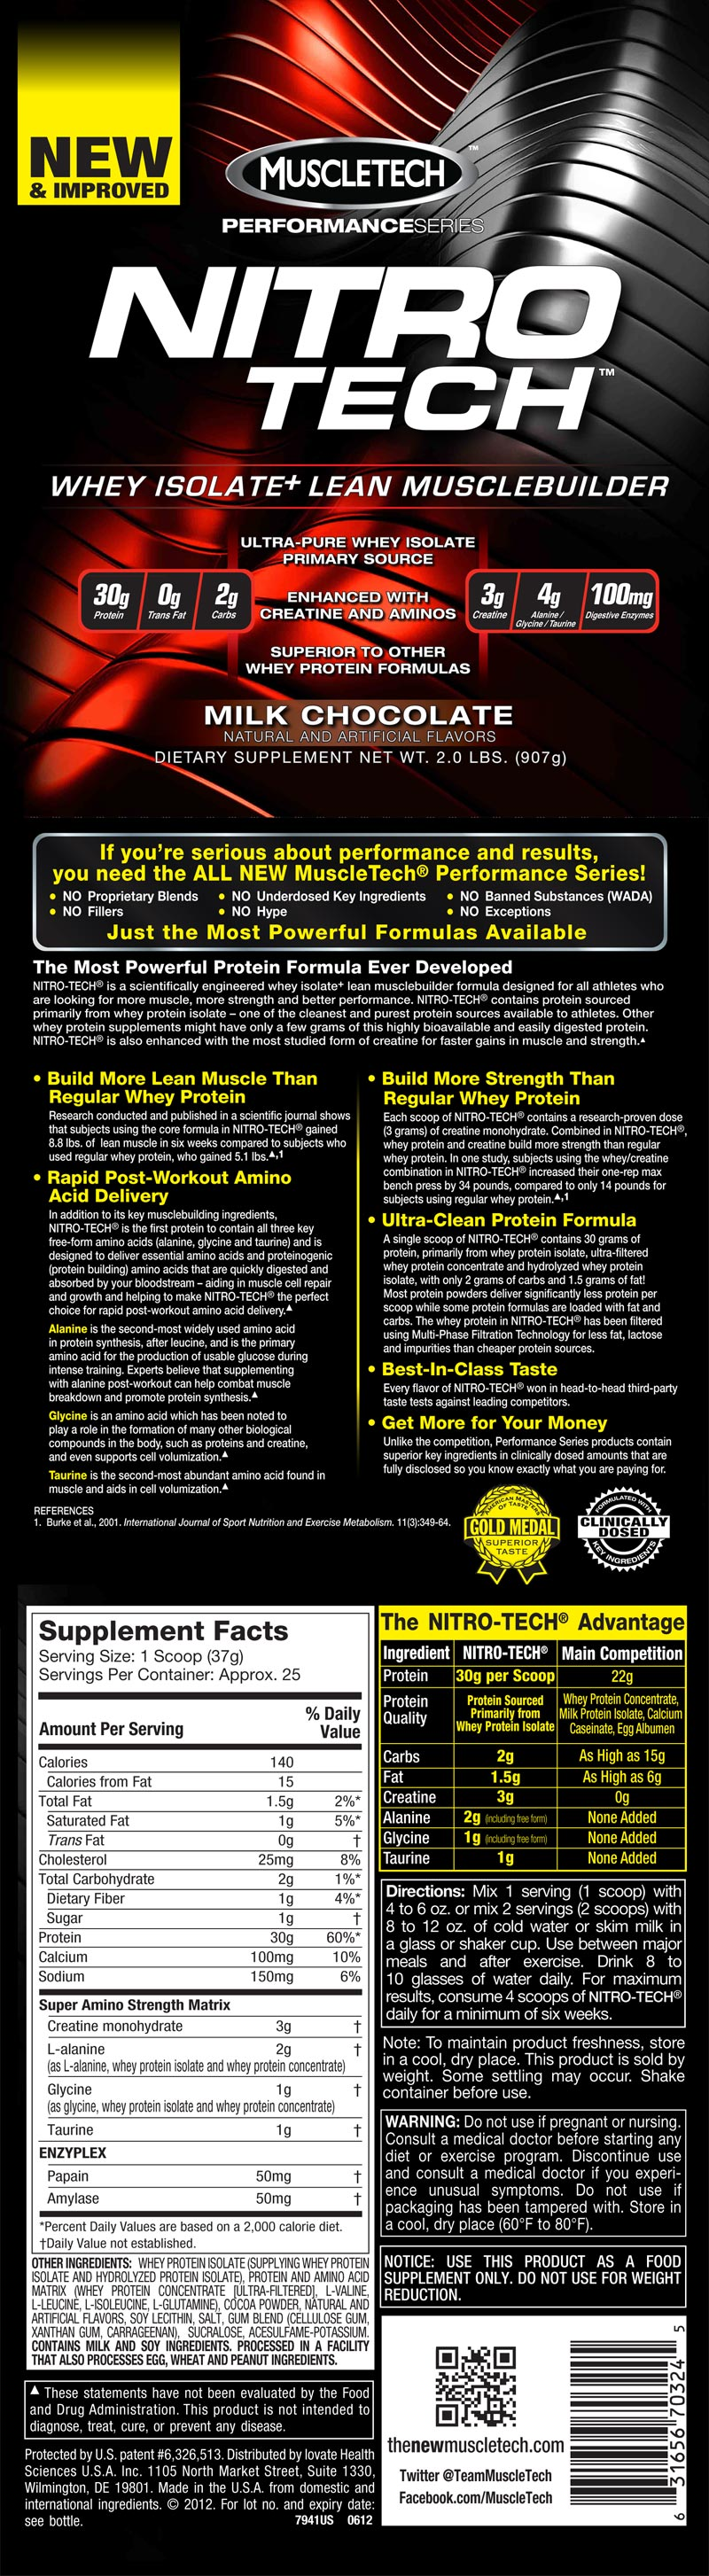 Nitro Tech Performance Series 907g Muscletech Biovea Nitrotech 4 Lbs Roll Over Image To Magnify View Label